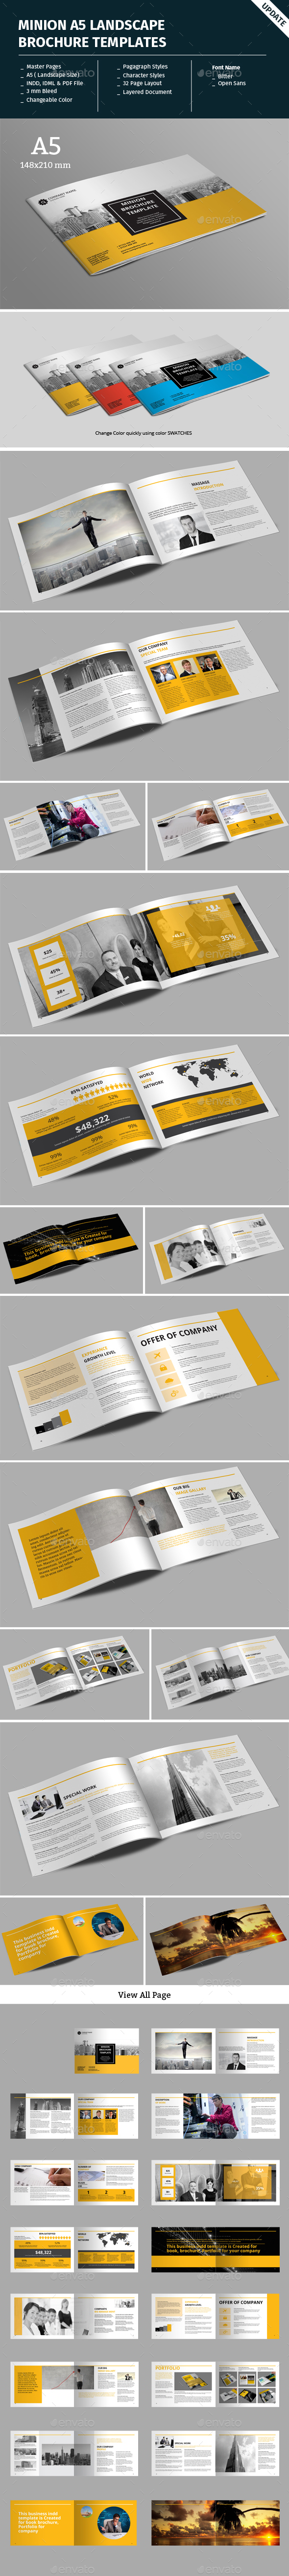 Minion A5 Landscape Brochure Template - Corporate Brochures